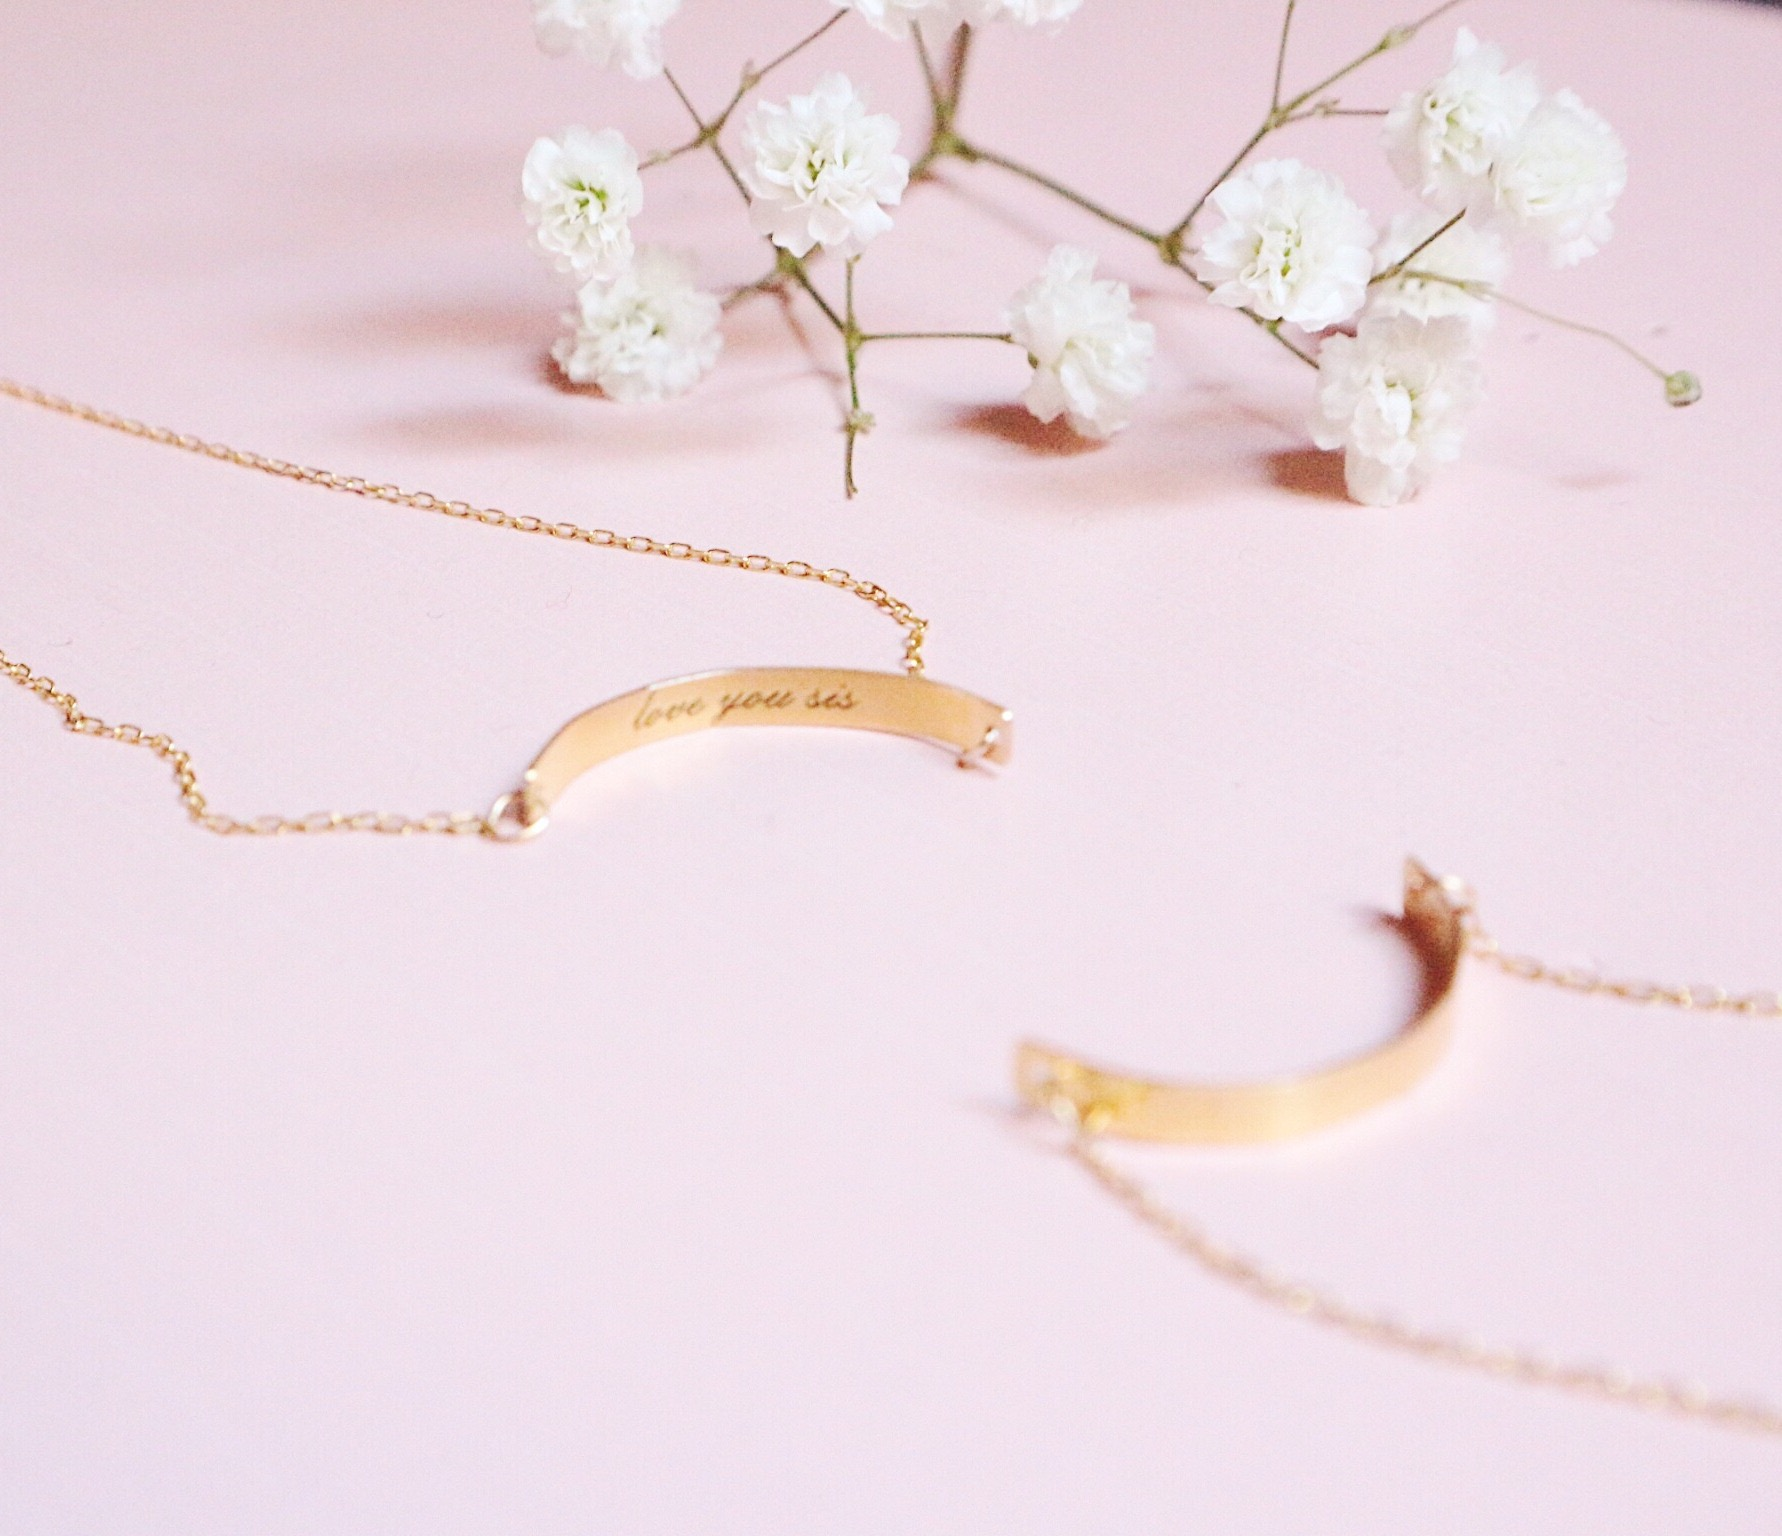 Set circle necklace